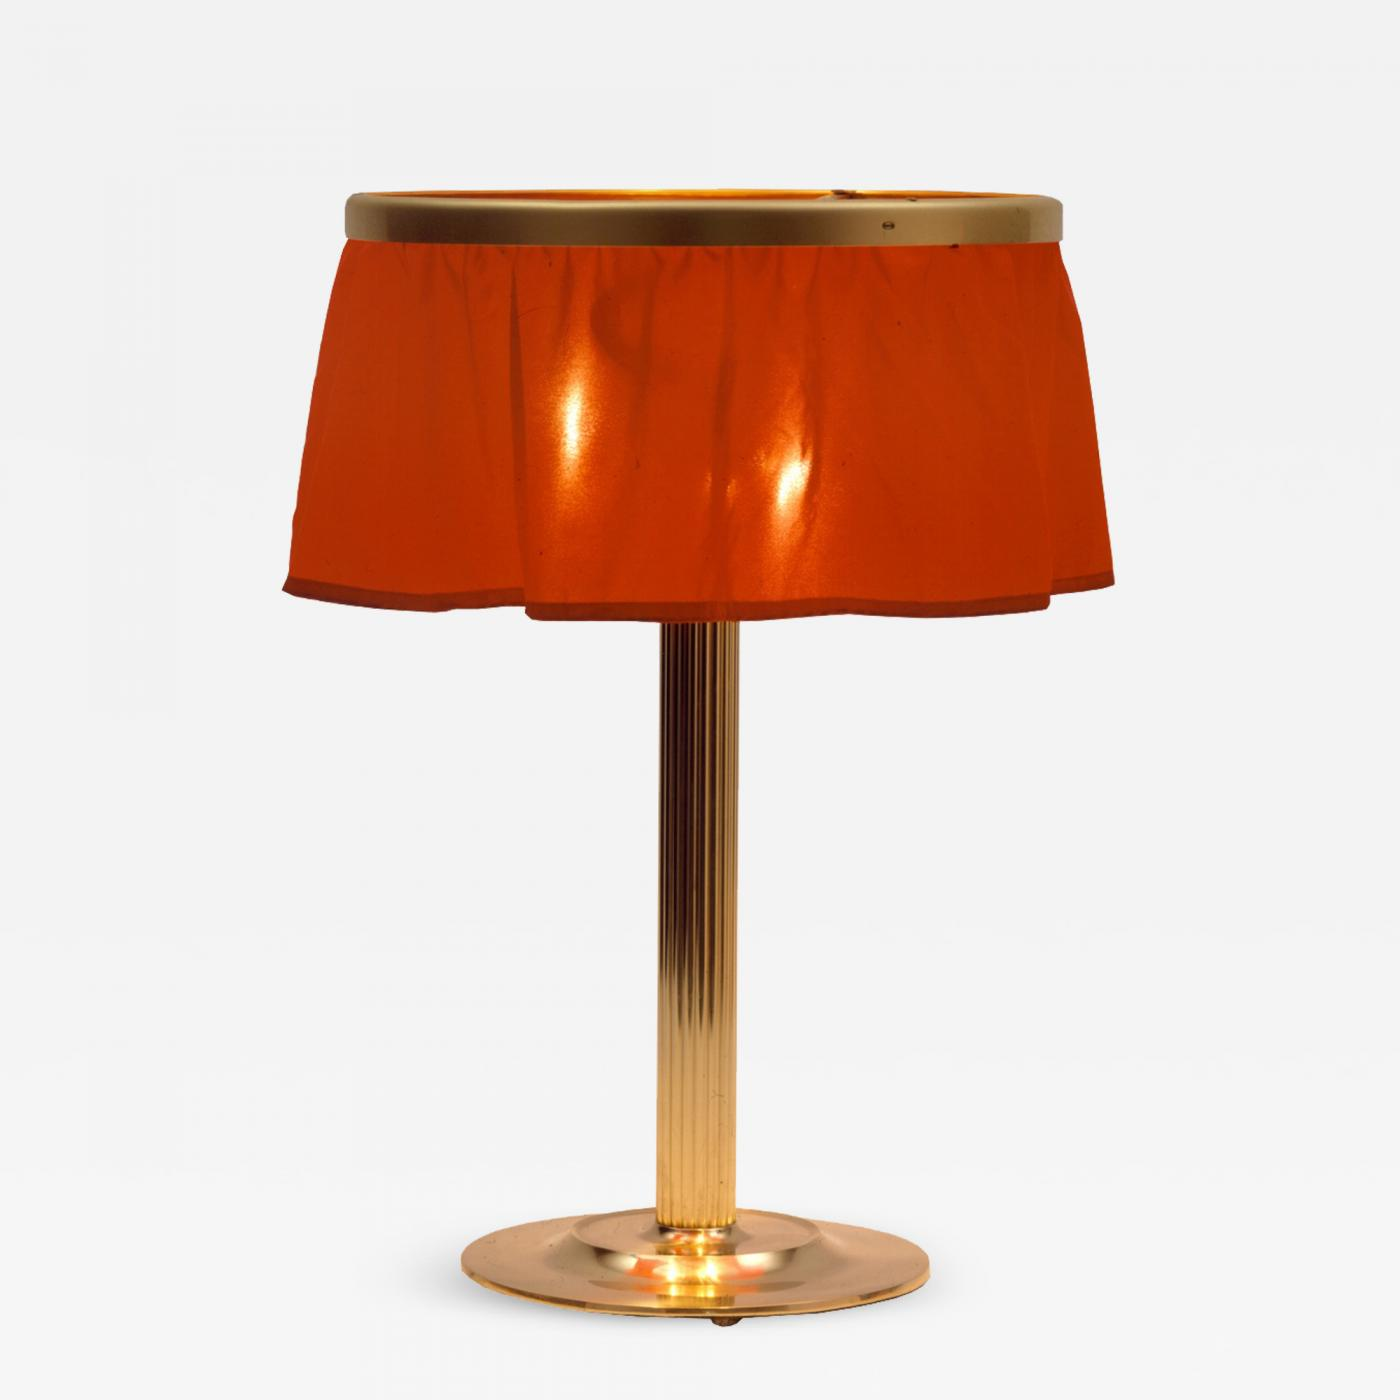 Adolf loos  table lamp  1910